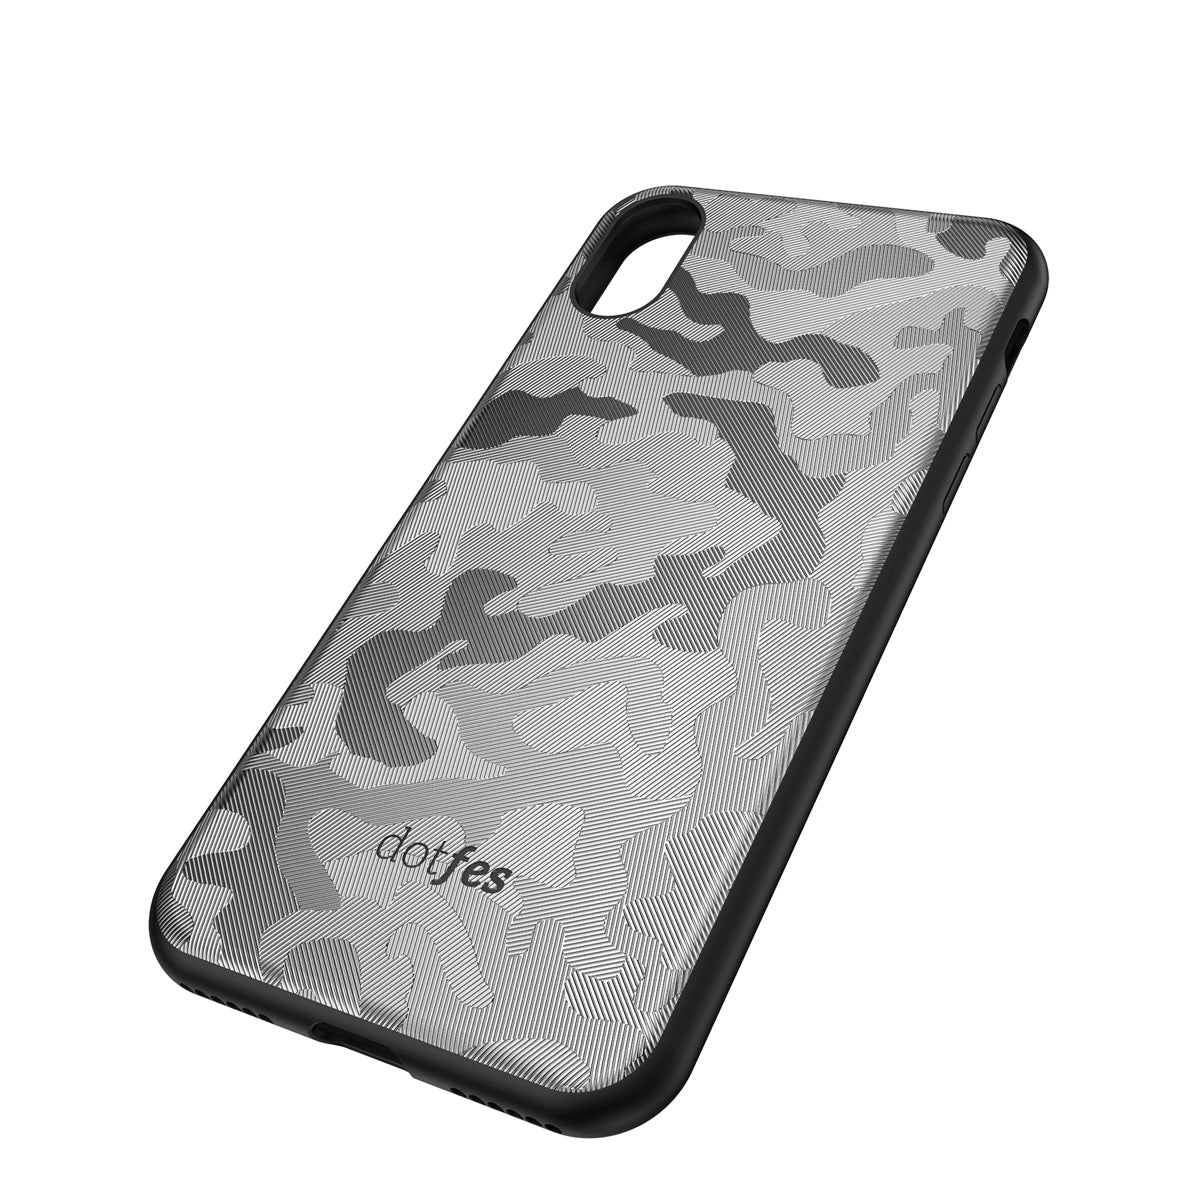 Capa de Smartphone Dotfes G07 Camouflage Style Apple iPhone Xr Cinza